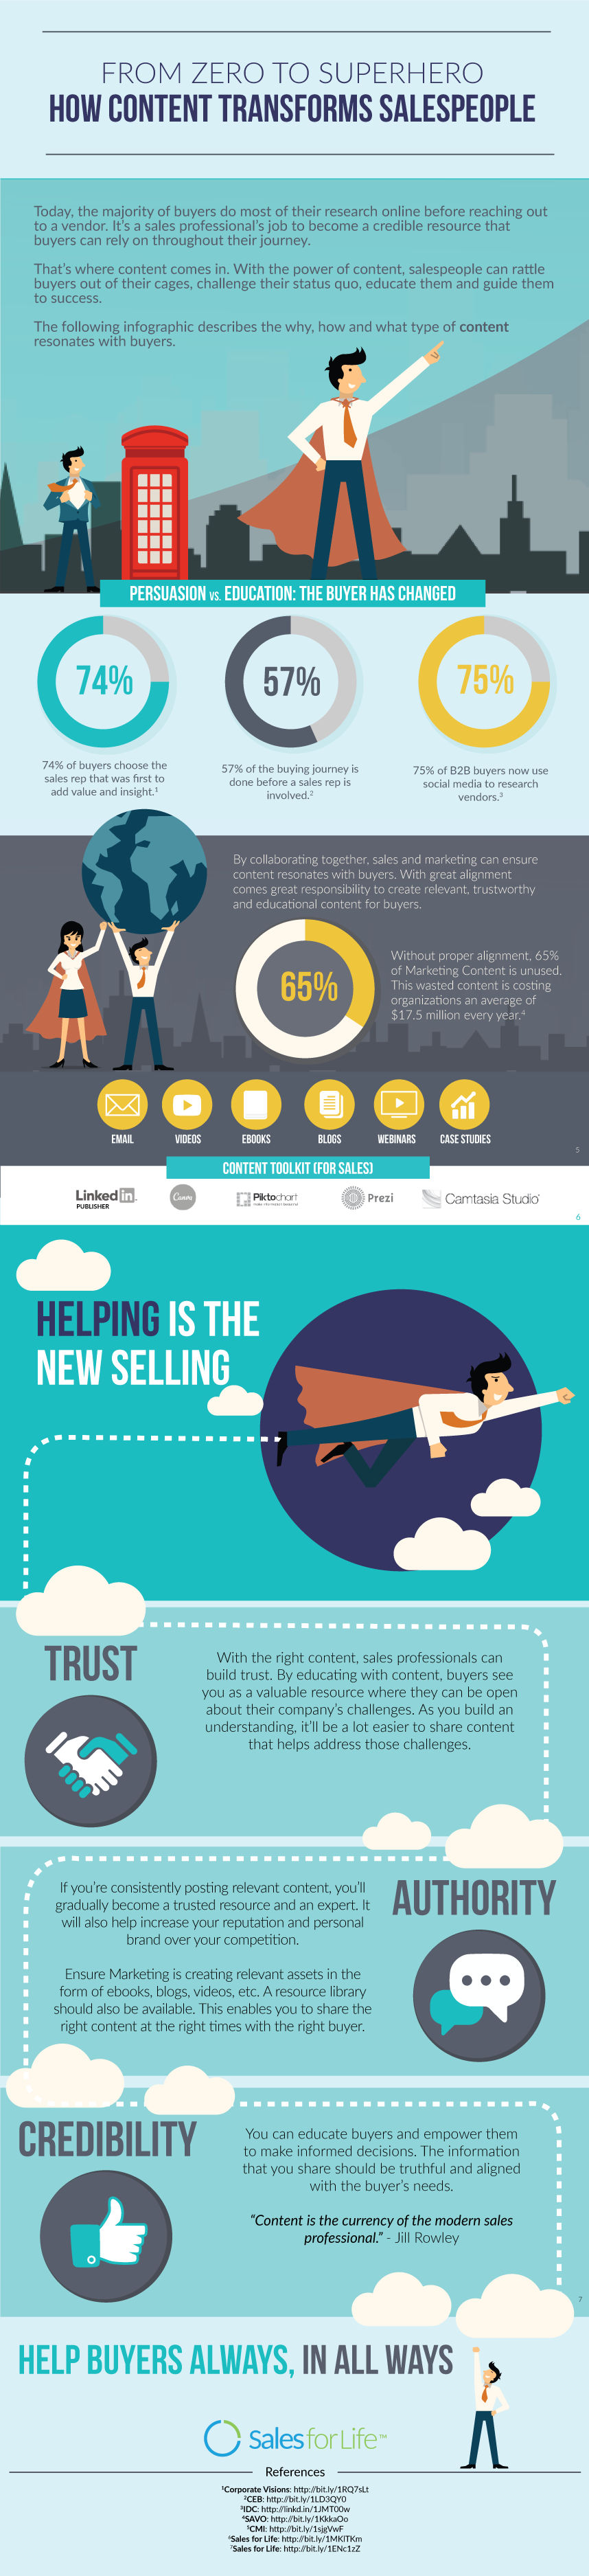 From Zero To Superhero How Content Transforms Salespeople [Infographic]